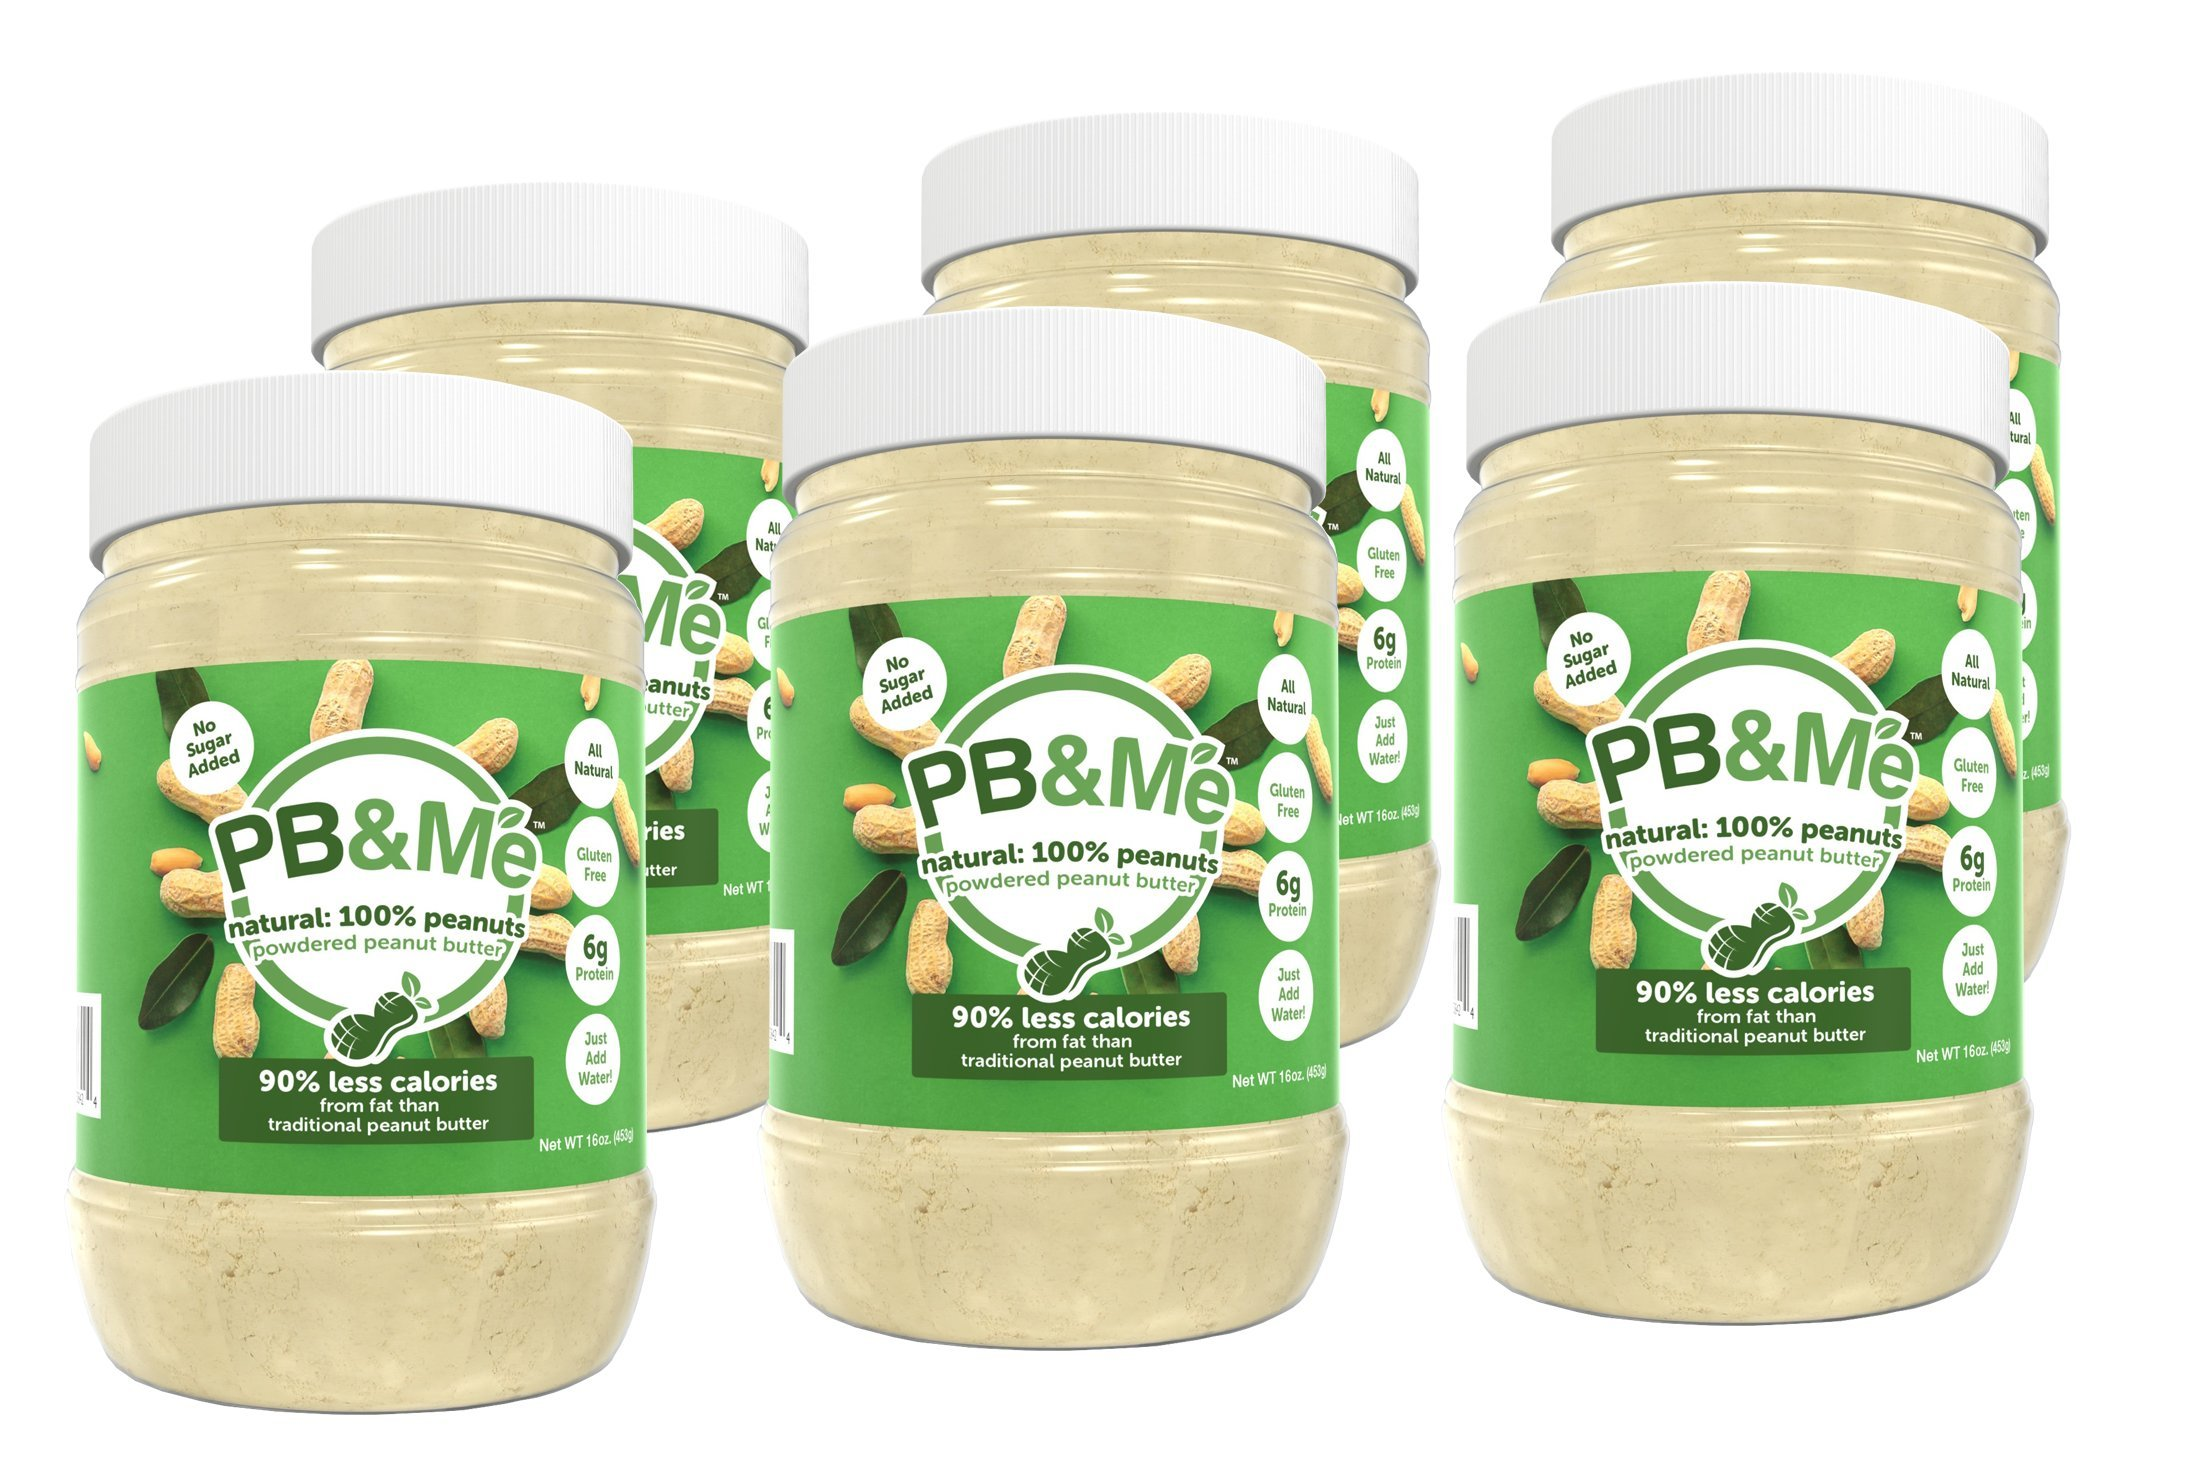 PB&Me Powdered Peanut Butter, Keto Snack, Gluten Free, Plant Protein, No Sugar Added, 16 Ounce, 6 Count by PB&Me